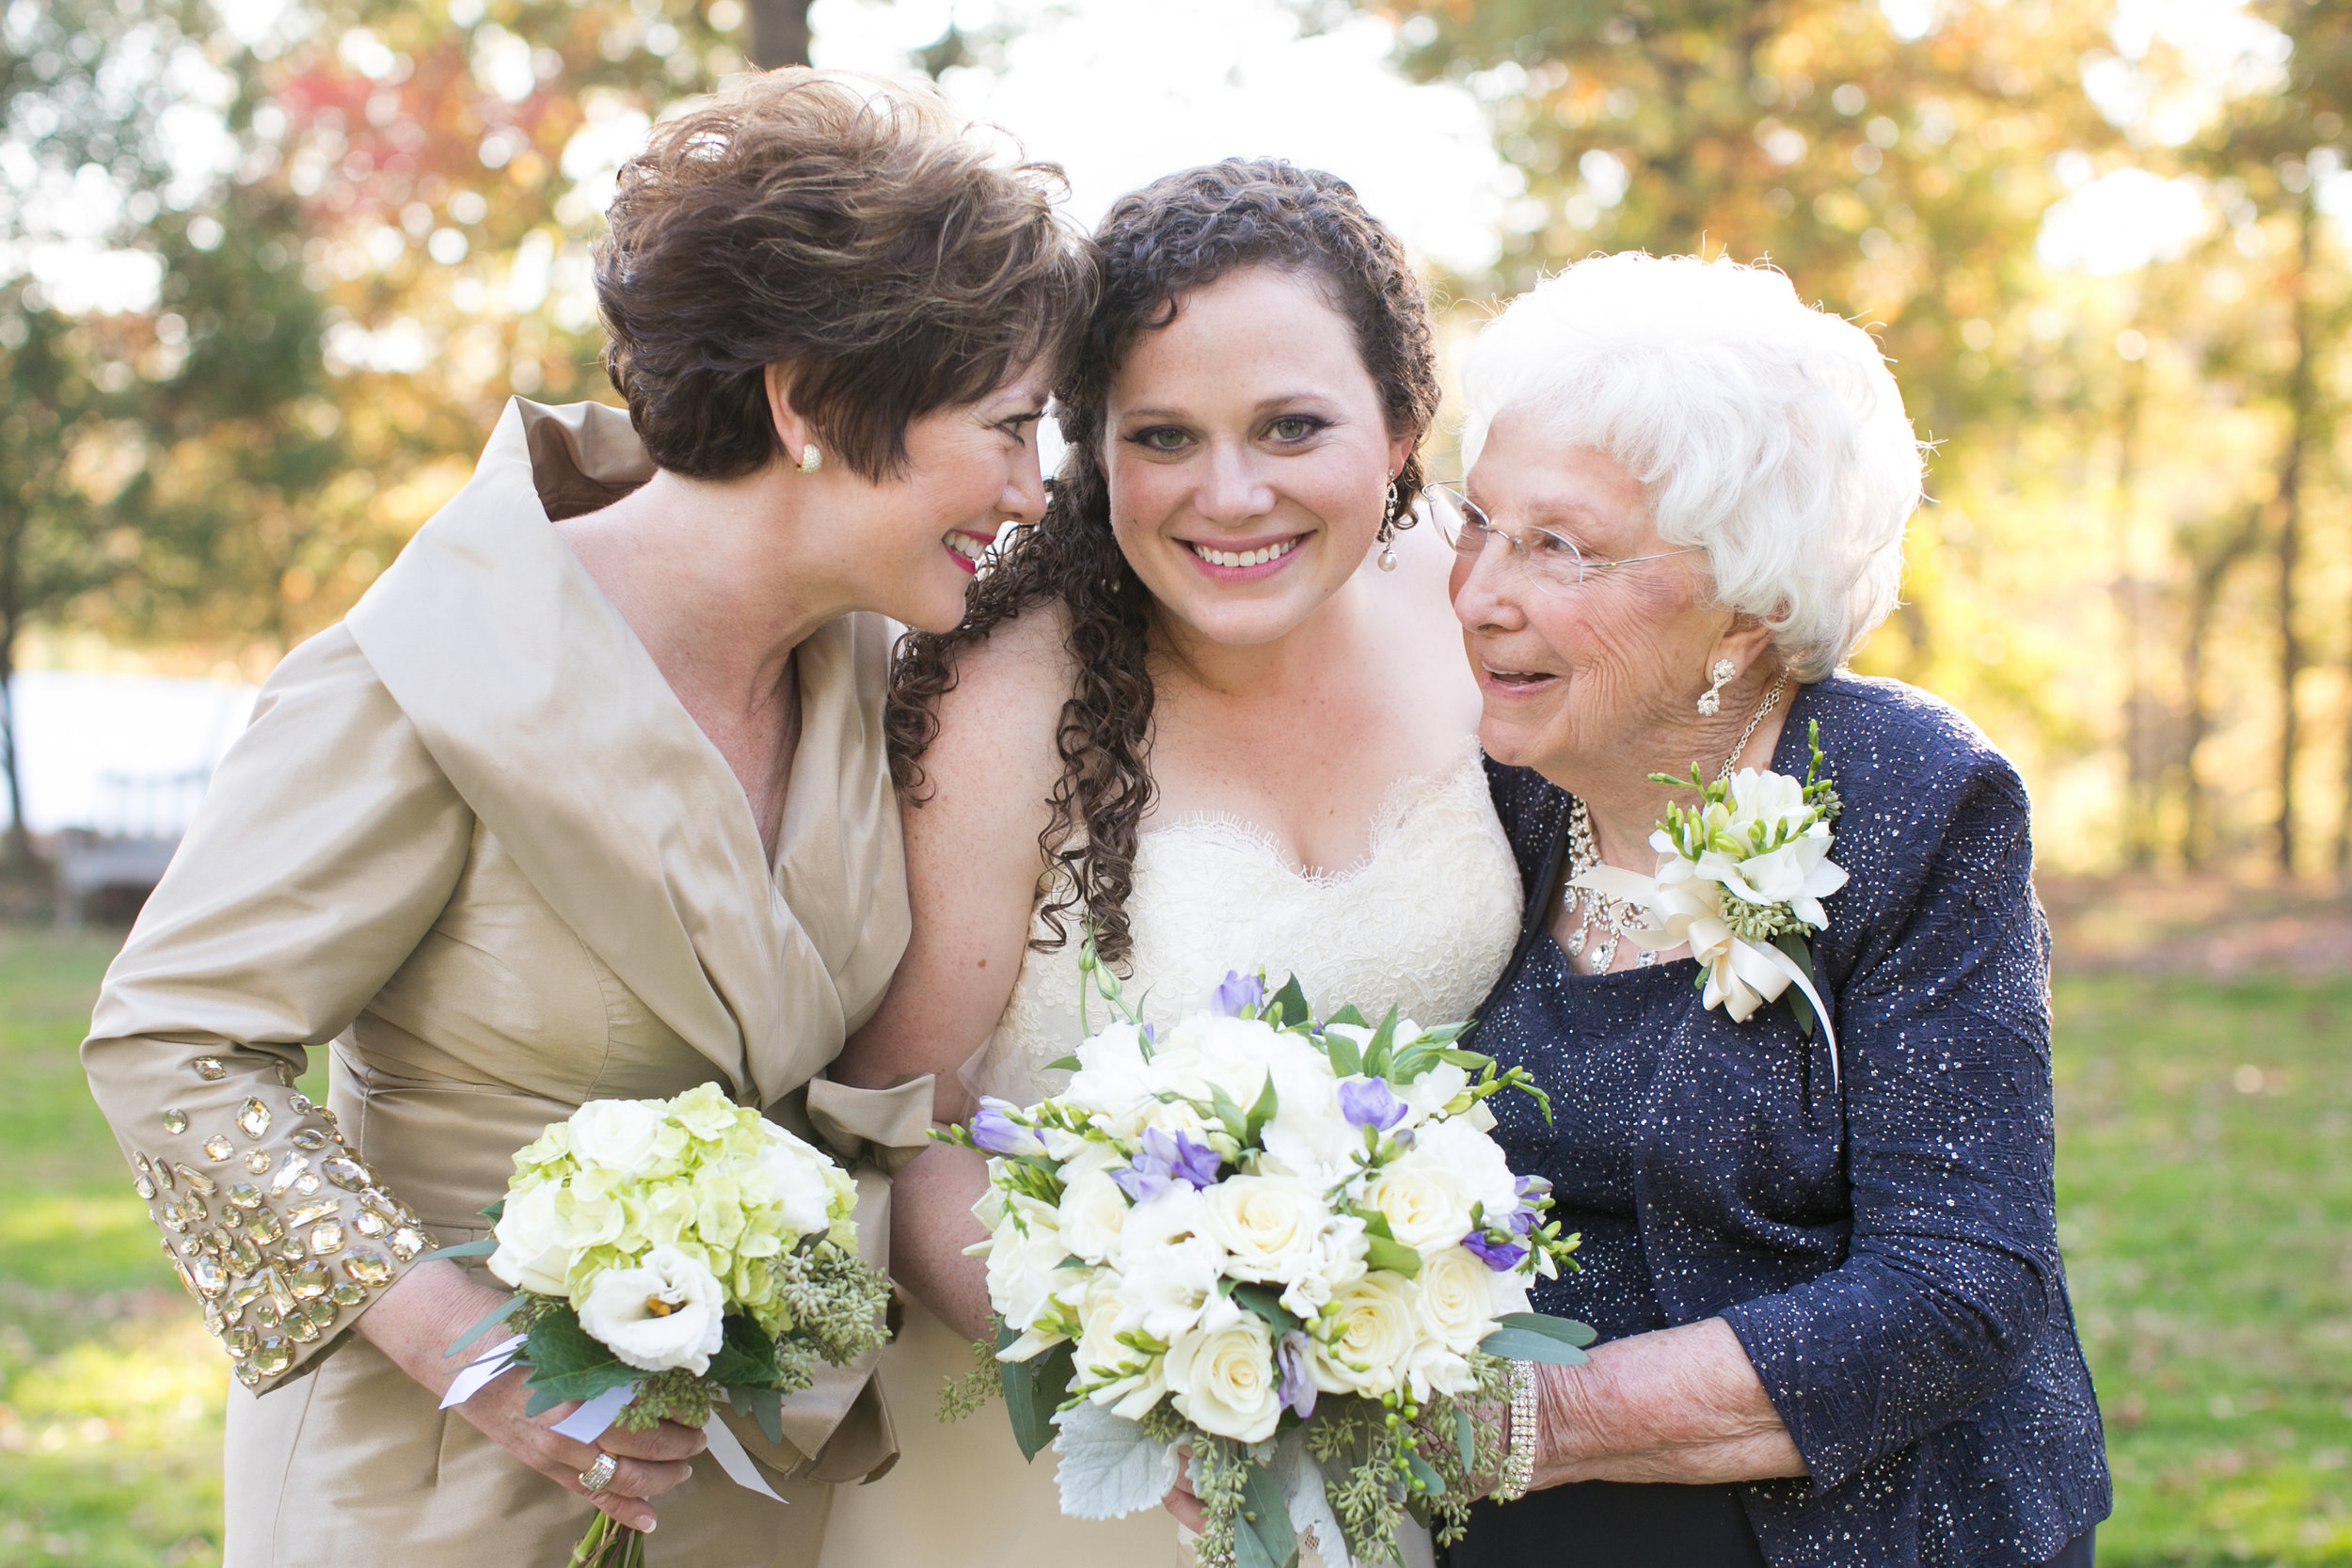 Love this shot of mom, bride and grandmother, each with their own floral accessory.  The bride's bouquet has just a touch of soft purple with sage greens and gray accents to bring in a bit of the season.